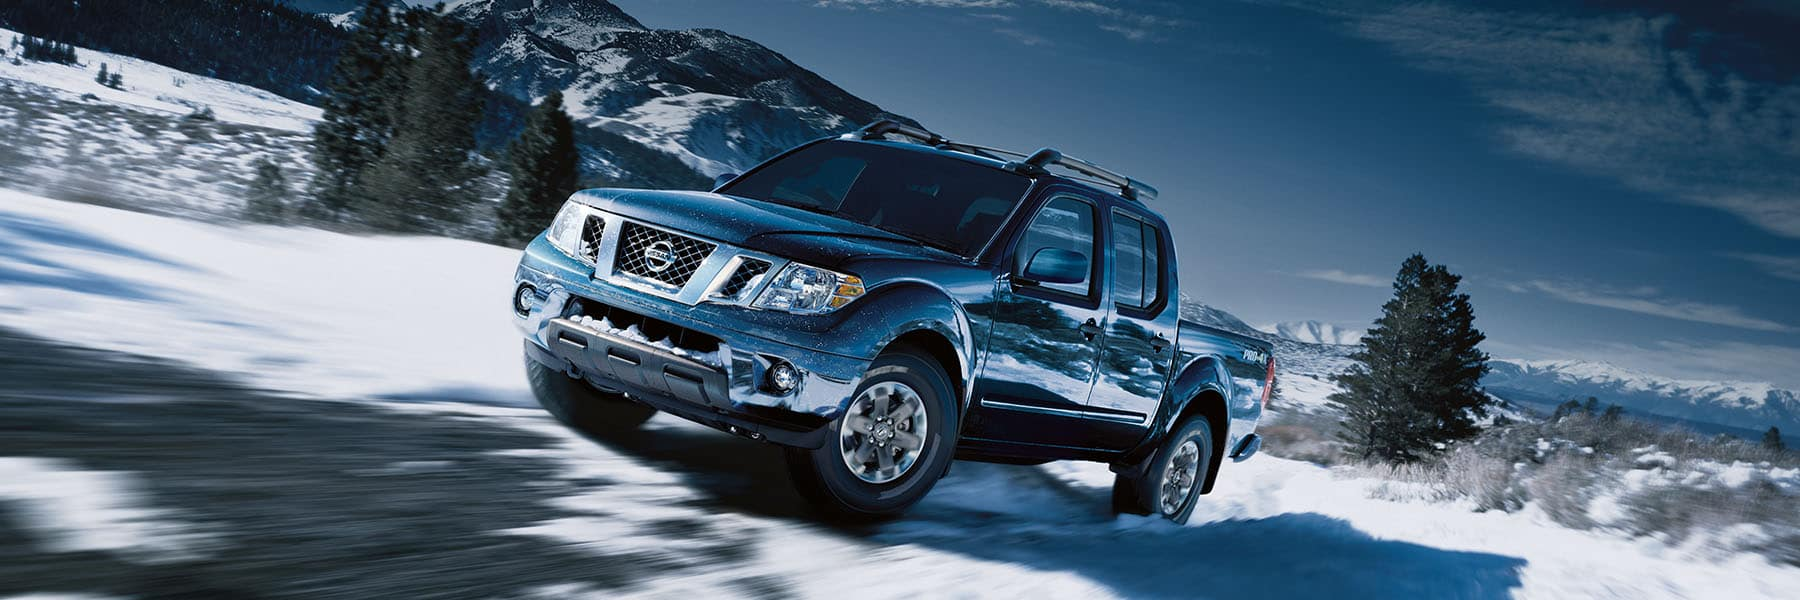 Best New 2021 Nissan Frontier Lease and Purchase Specials in Denver, CO